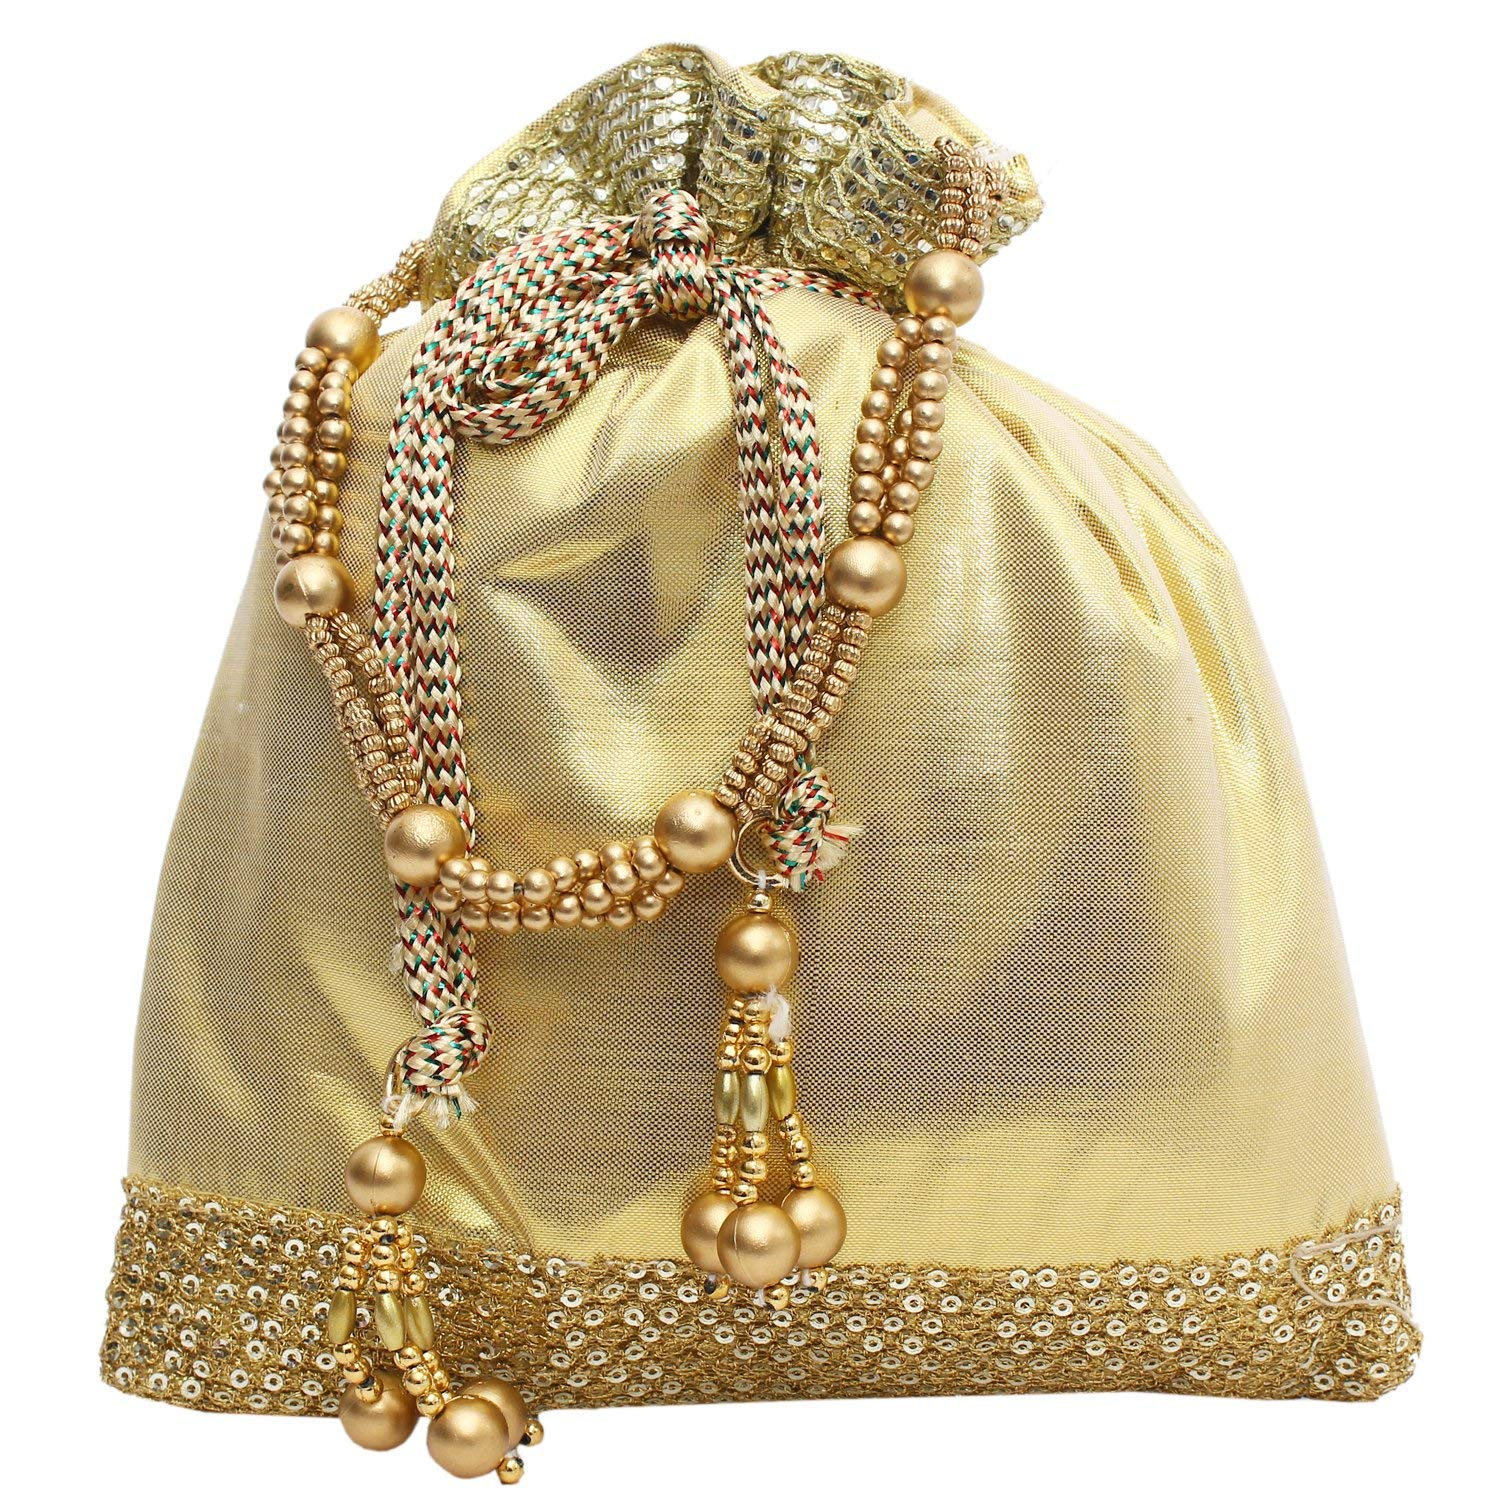 Wedding gift Women's Raw Silk Potli Bag Golden - Pack of 5 - Bagaholics Gift